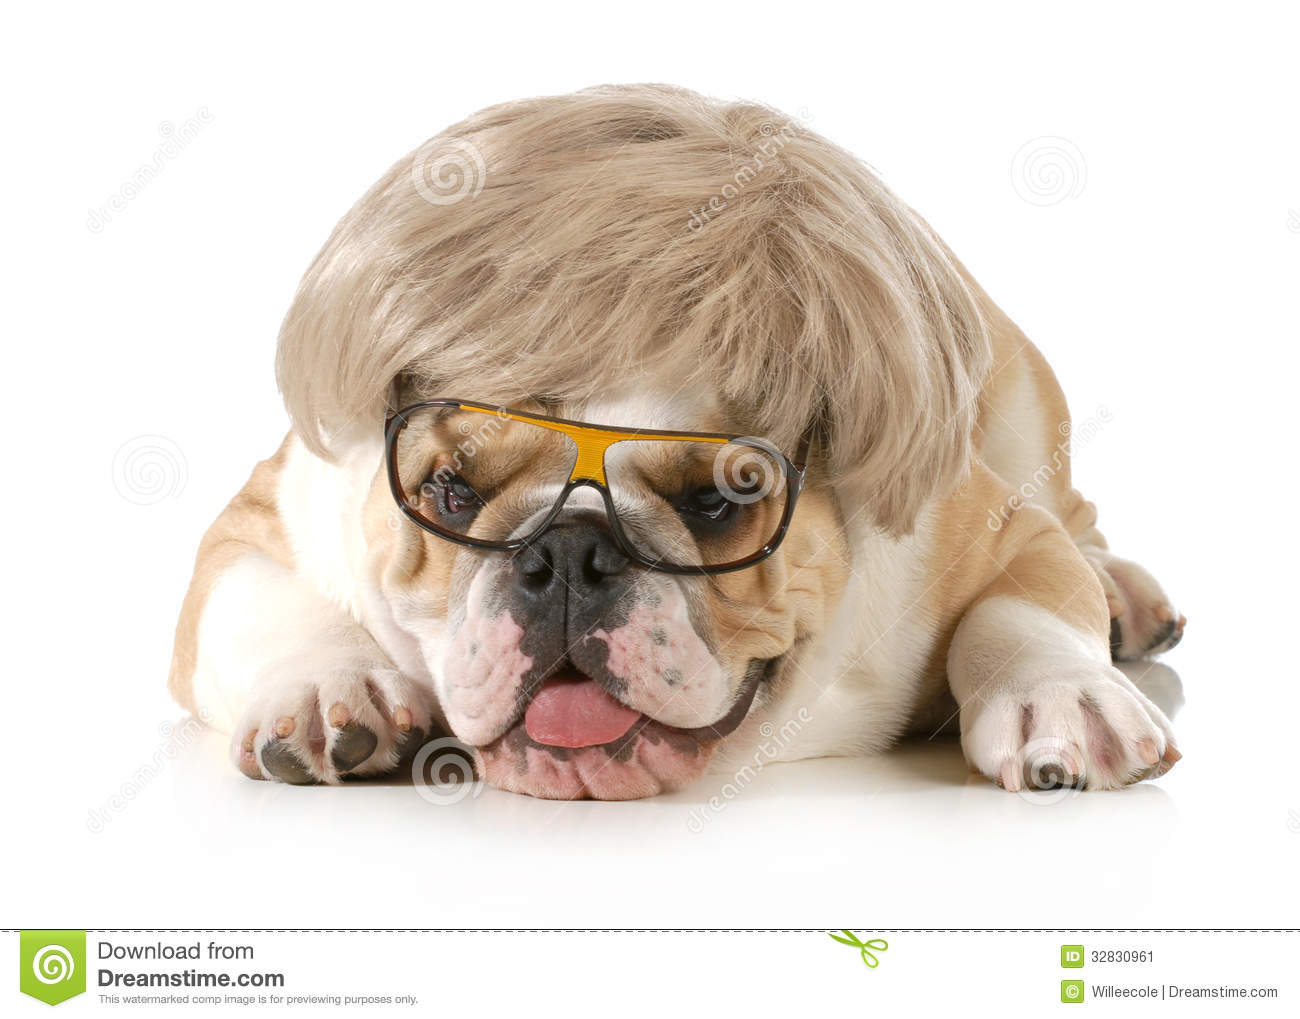 Cute Silly Wallpaper Funny Dog Stock Image Image Of Canine Portrait Card